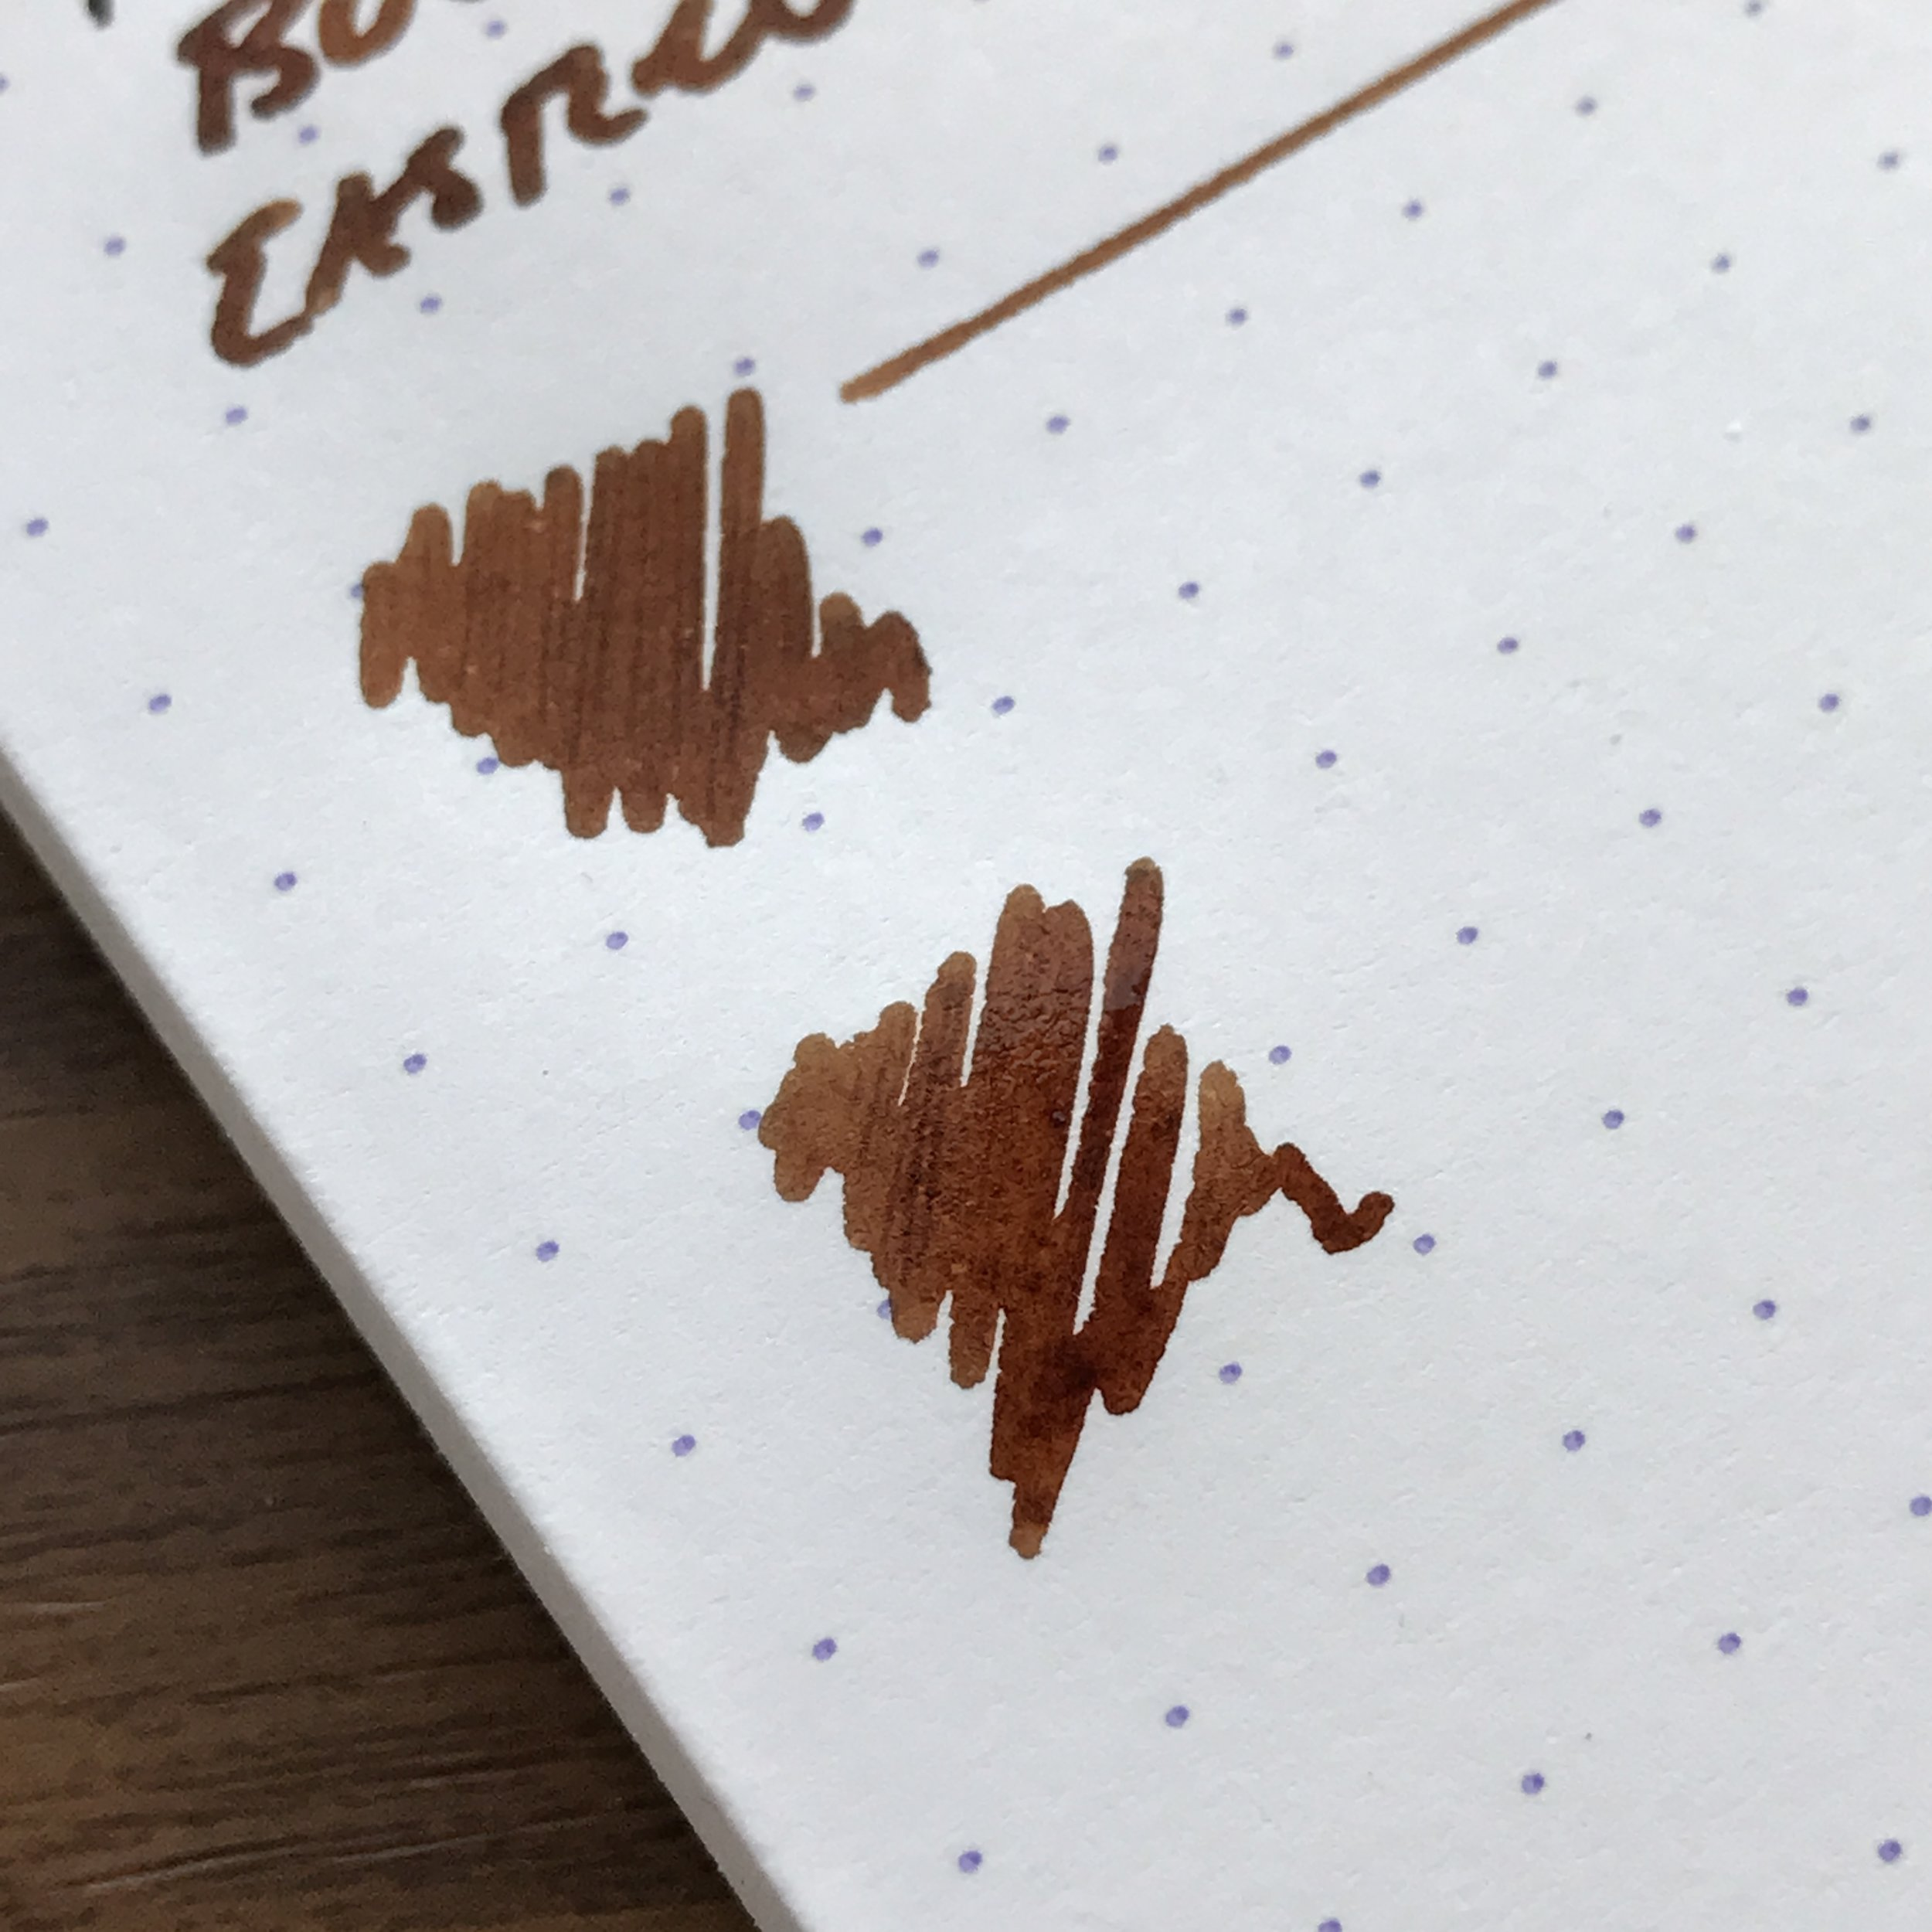 You may recall this shot of the Eastern Brown Snake from my Faber Castell e-Motion review a few weeks back. This ink is a rich brown that can have some reddish tones, depending on how the light hits it.